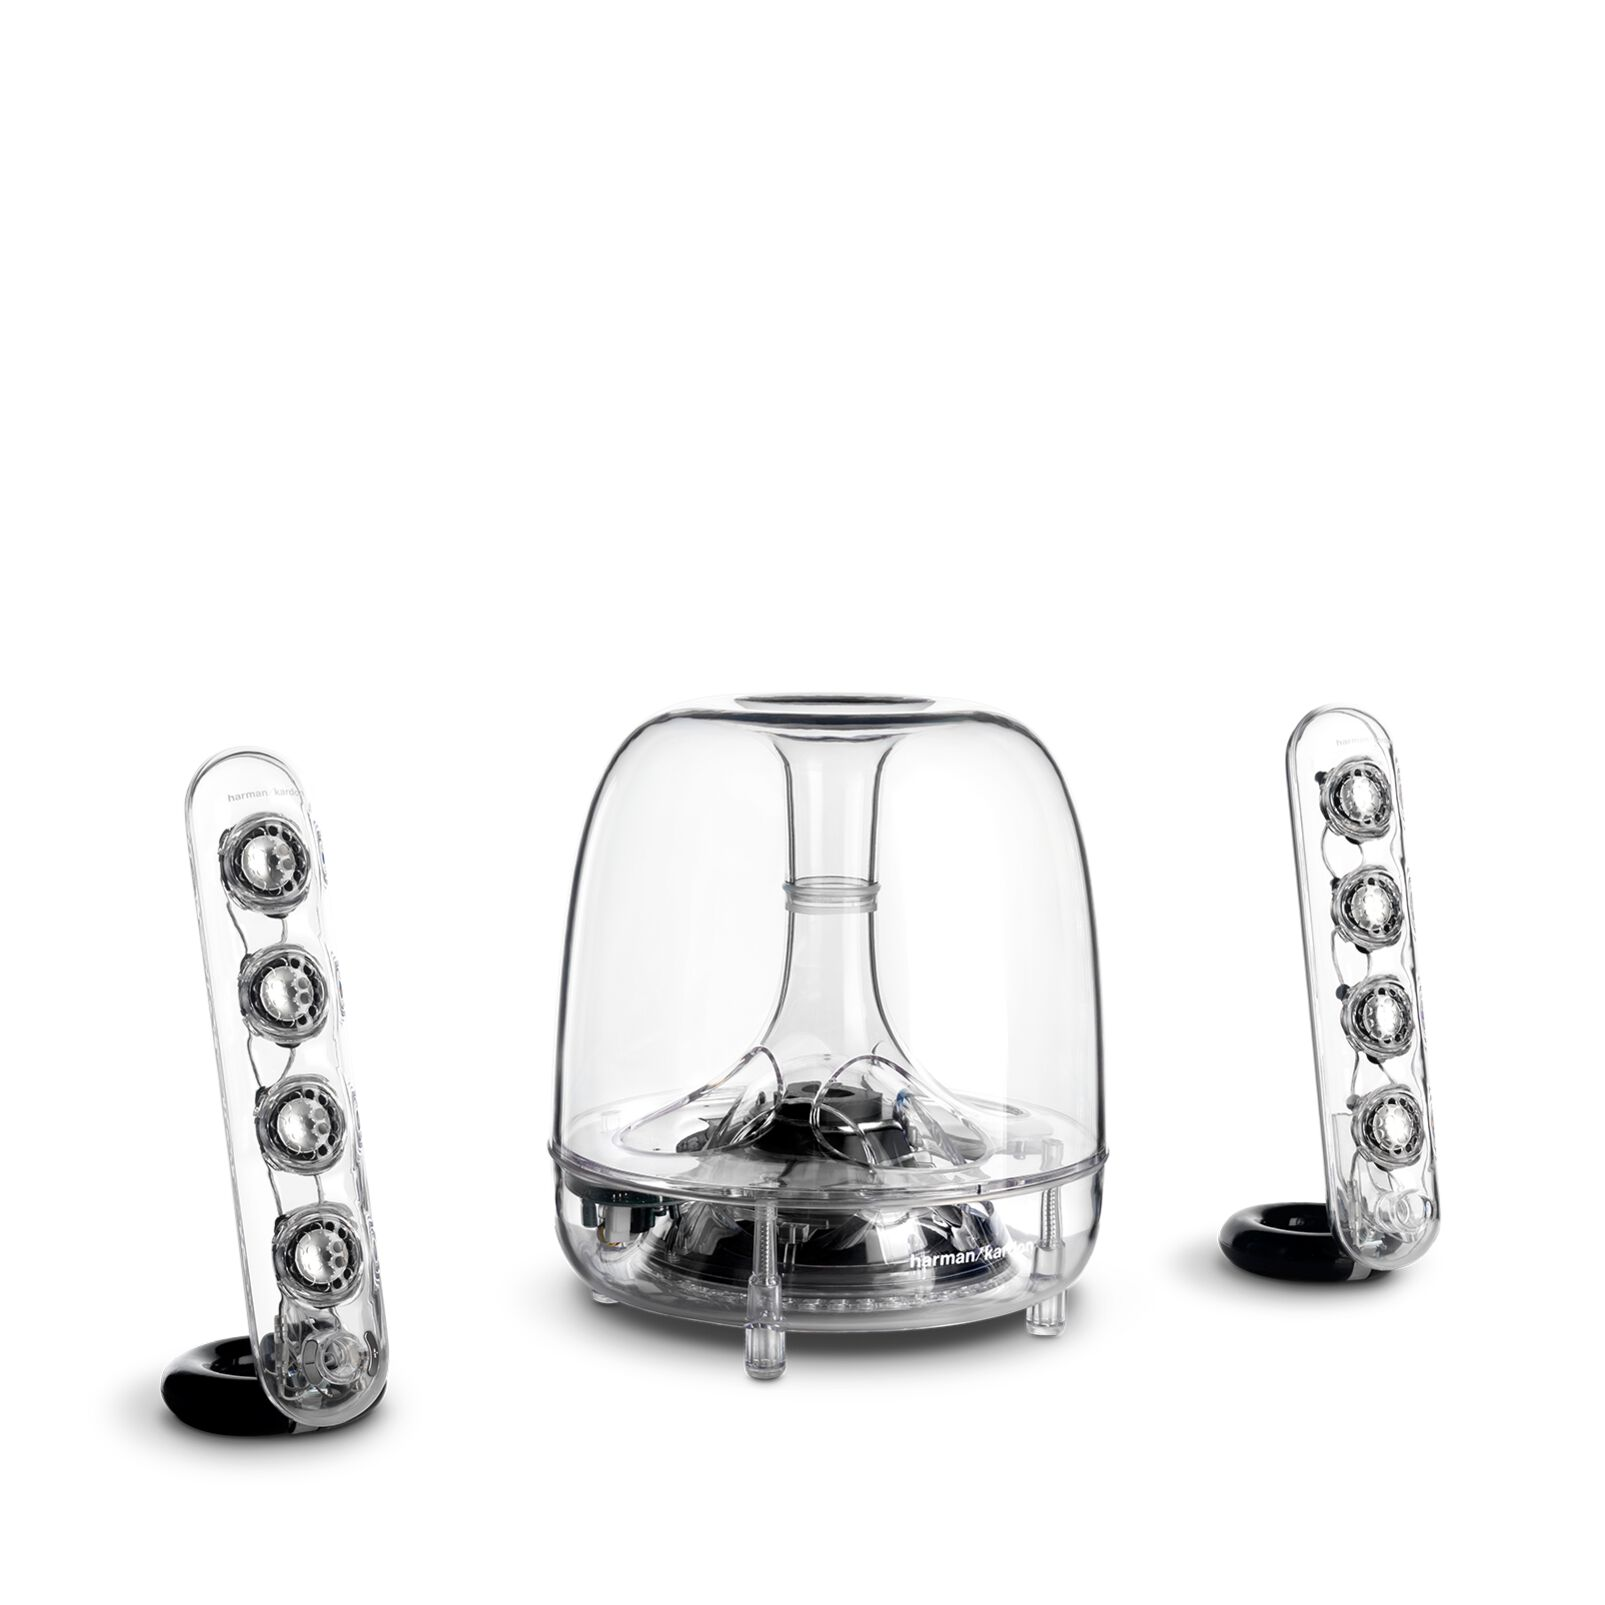 Harman Kardon Soundsticks III 2.1-Channel Multimedia Sound